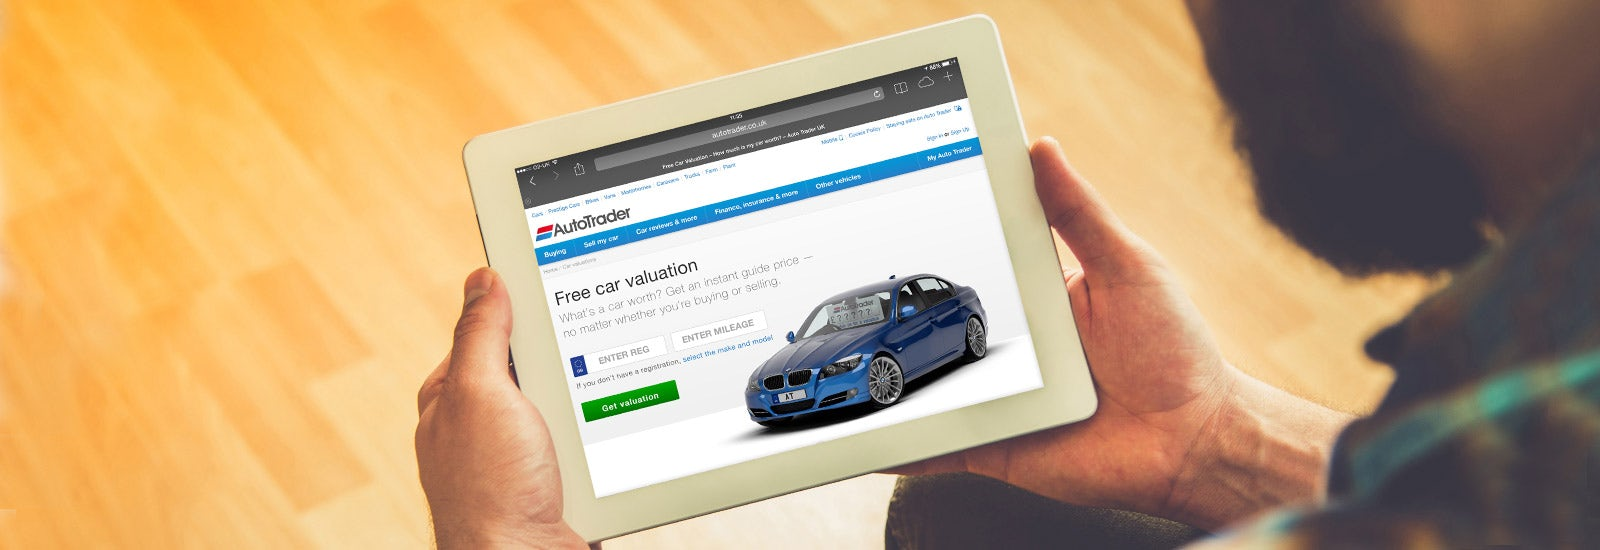 The best ways to sell your old car | carwow